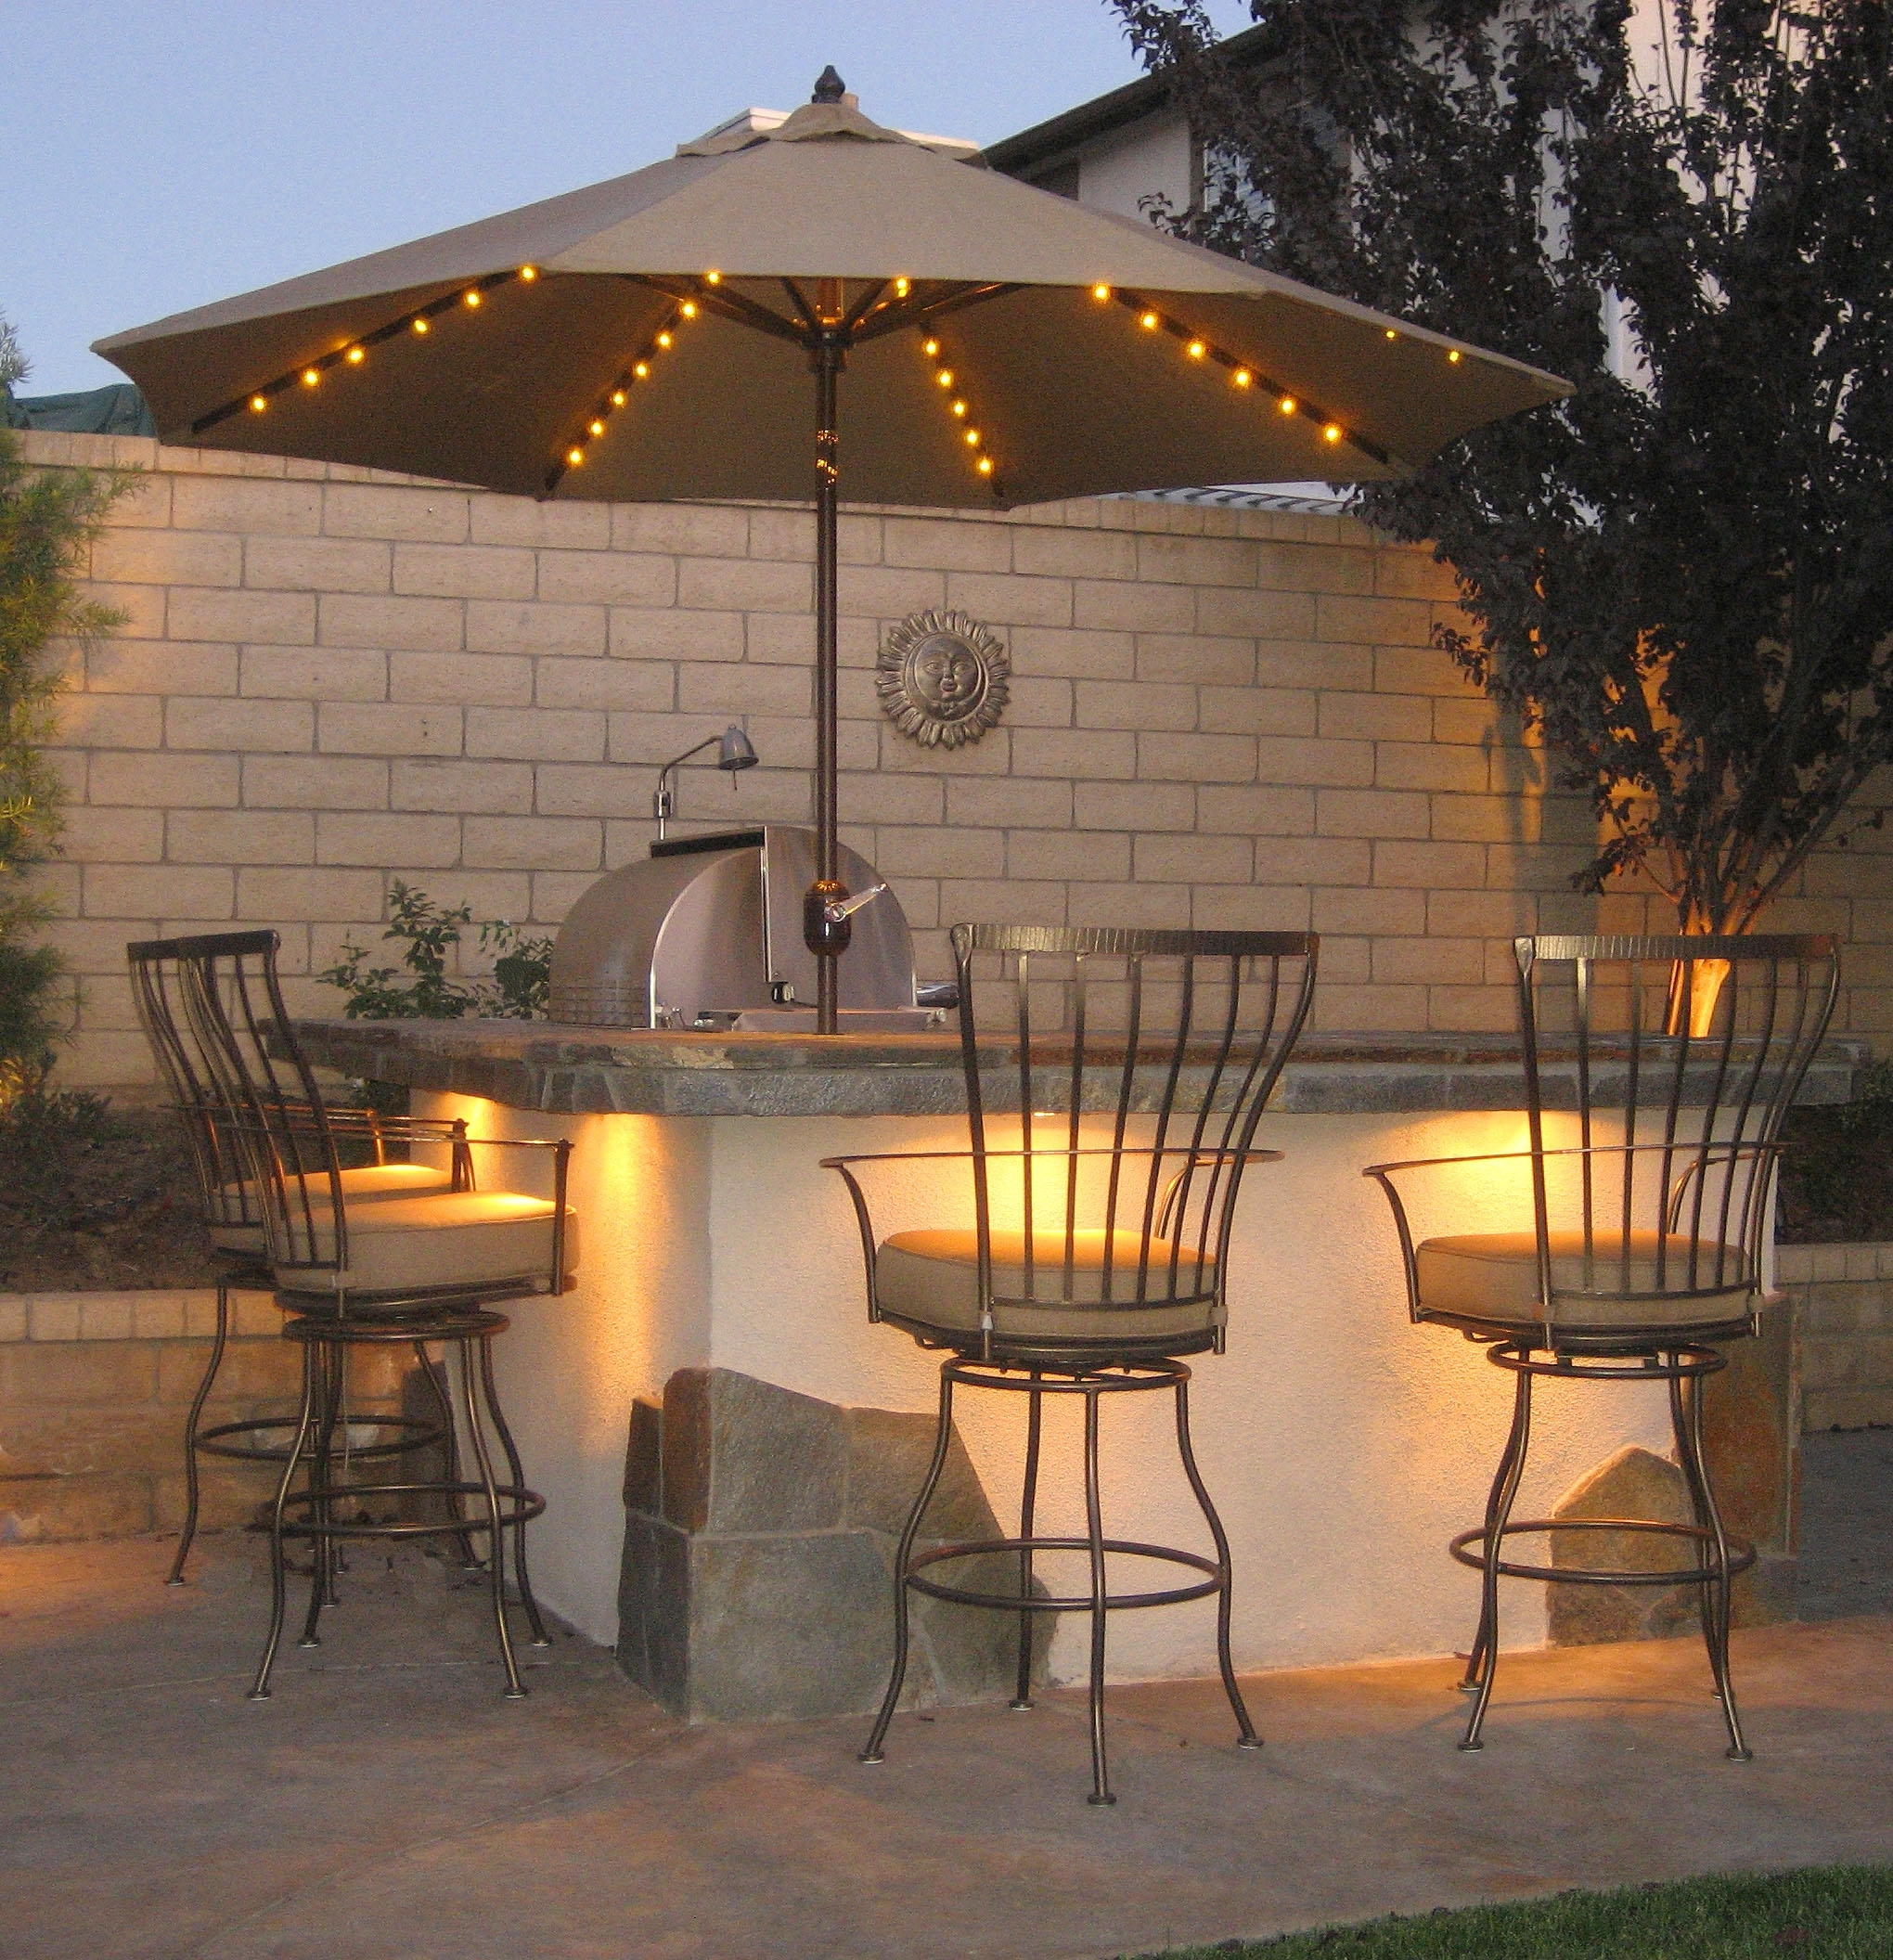 Lighted Patio Umbrellas Regarding Latest Lighted Patio Umbrellas — Mistikcamping Home Design : Different (Gallery 8 of 20)